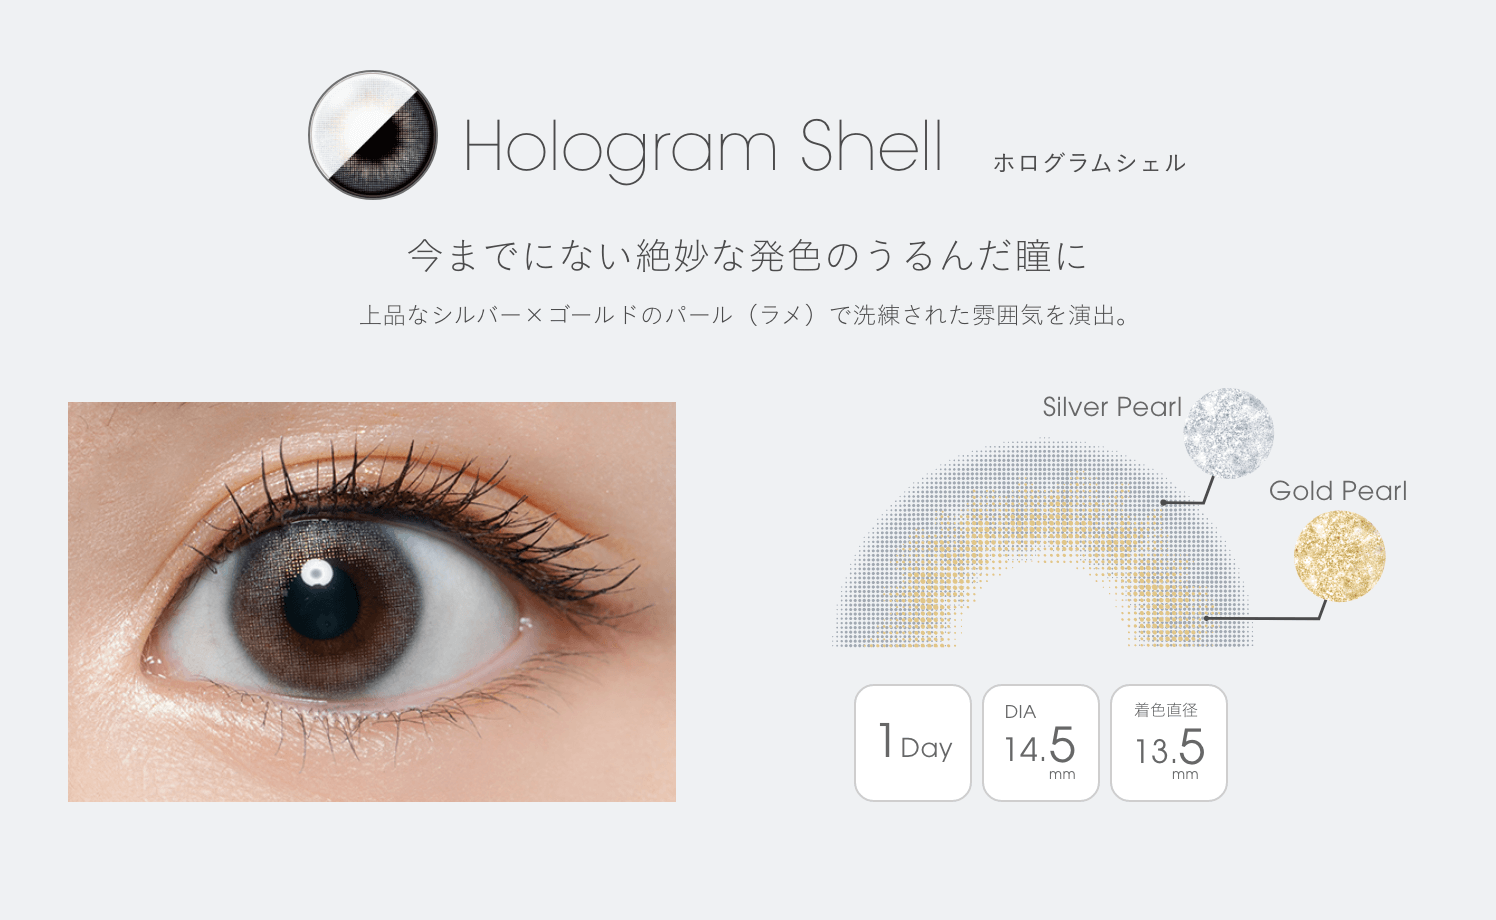 Hologram Shell